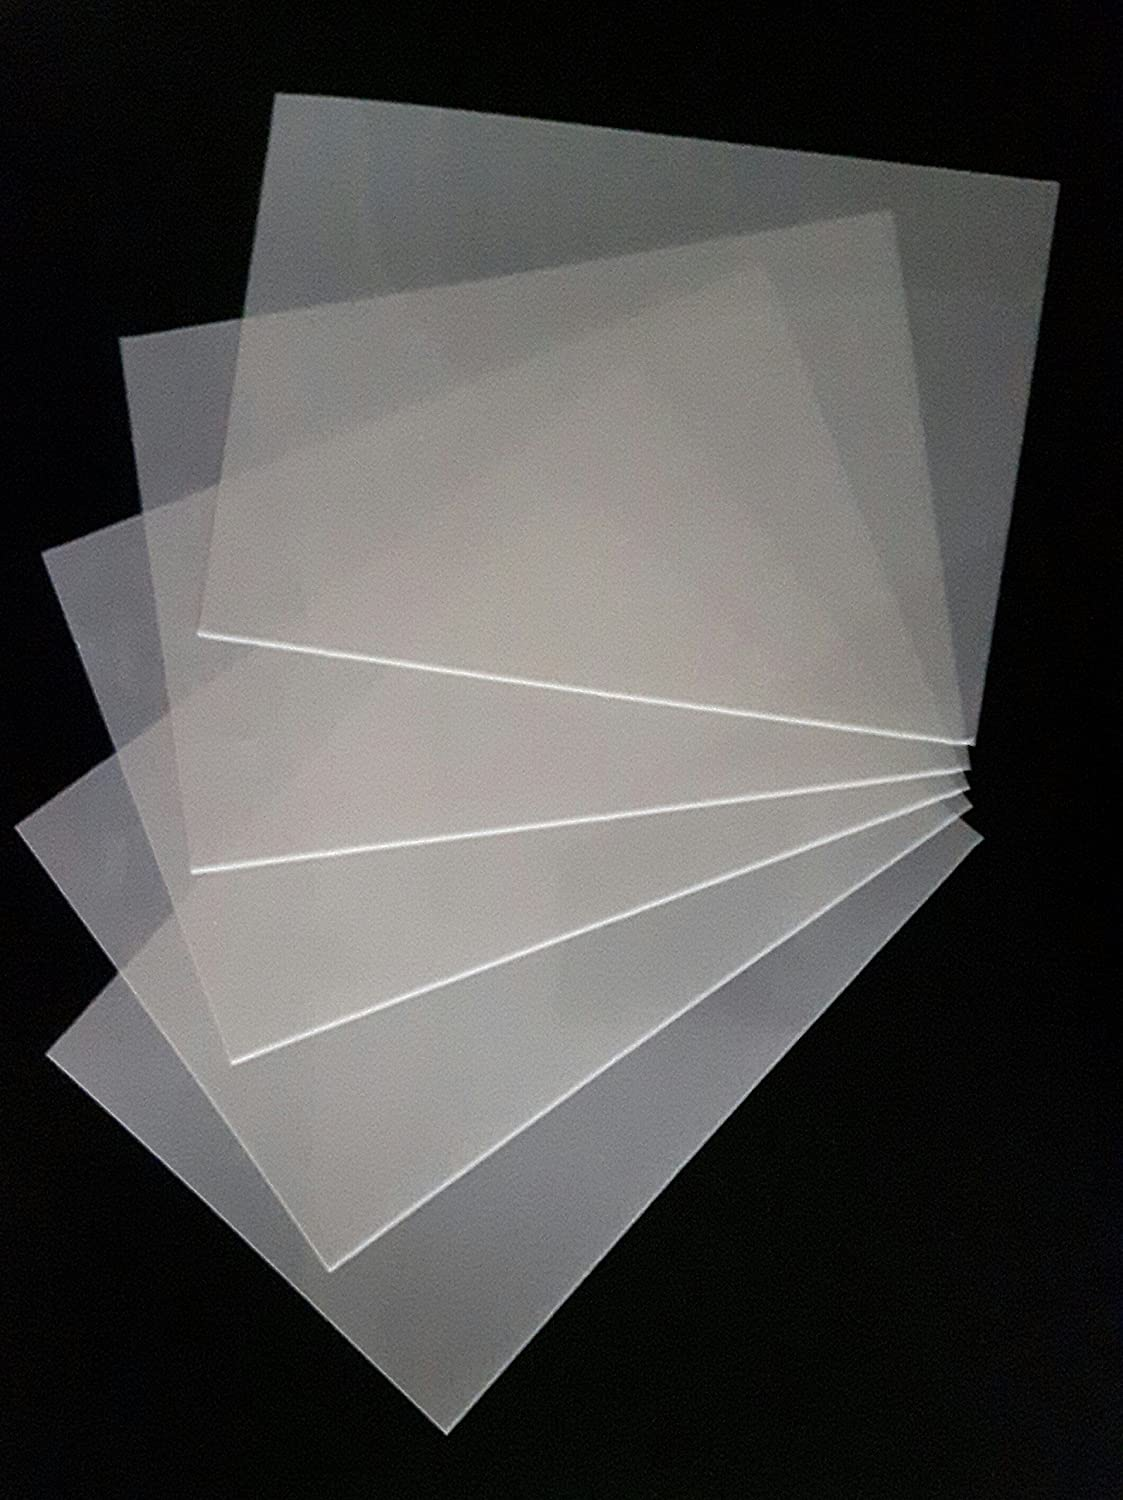 Dazzle Cards 10 x A5 Genuine Mylar sheets 125 micron reusable hobby craft stencils